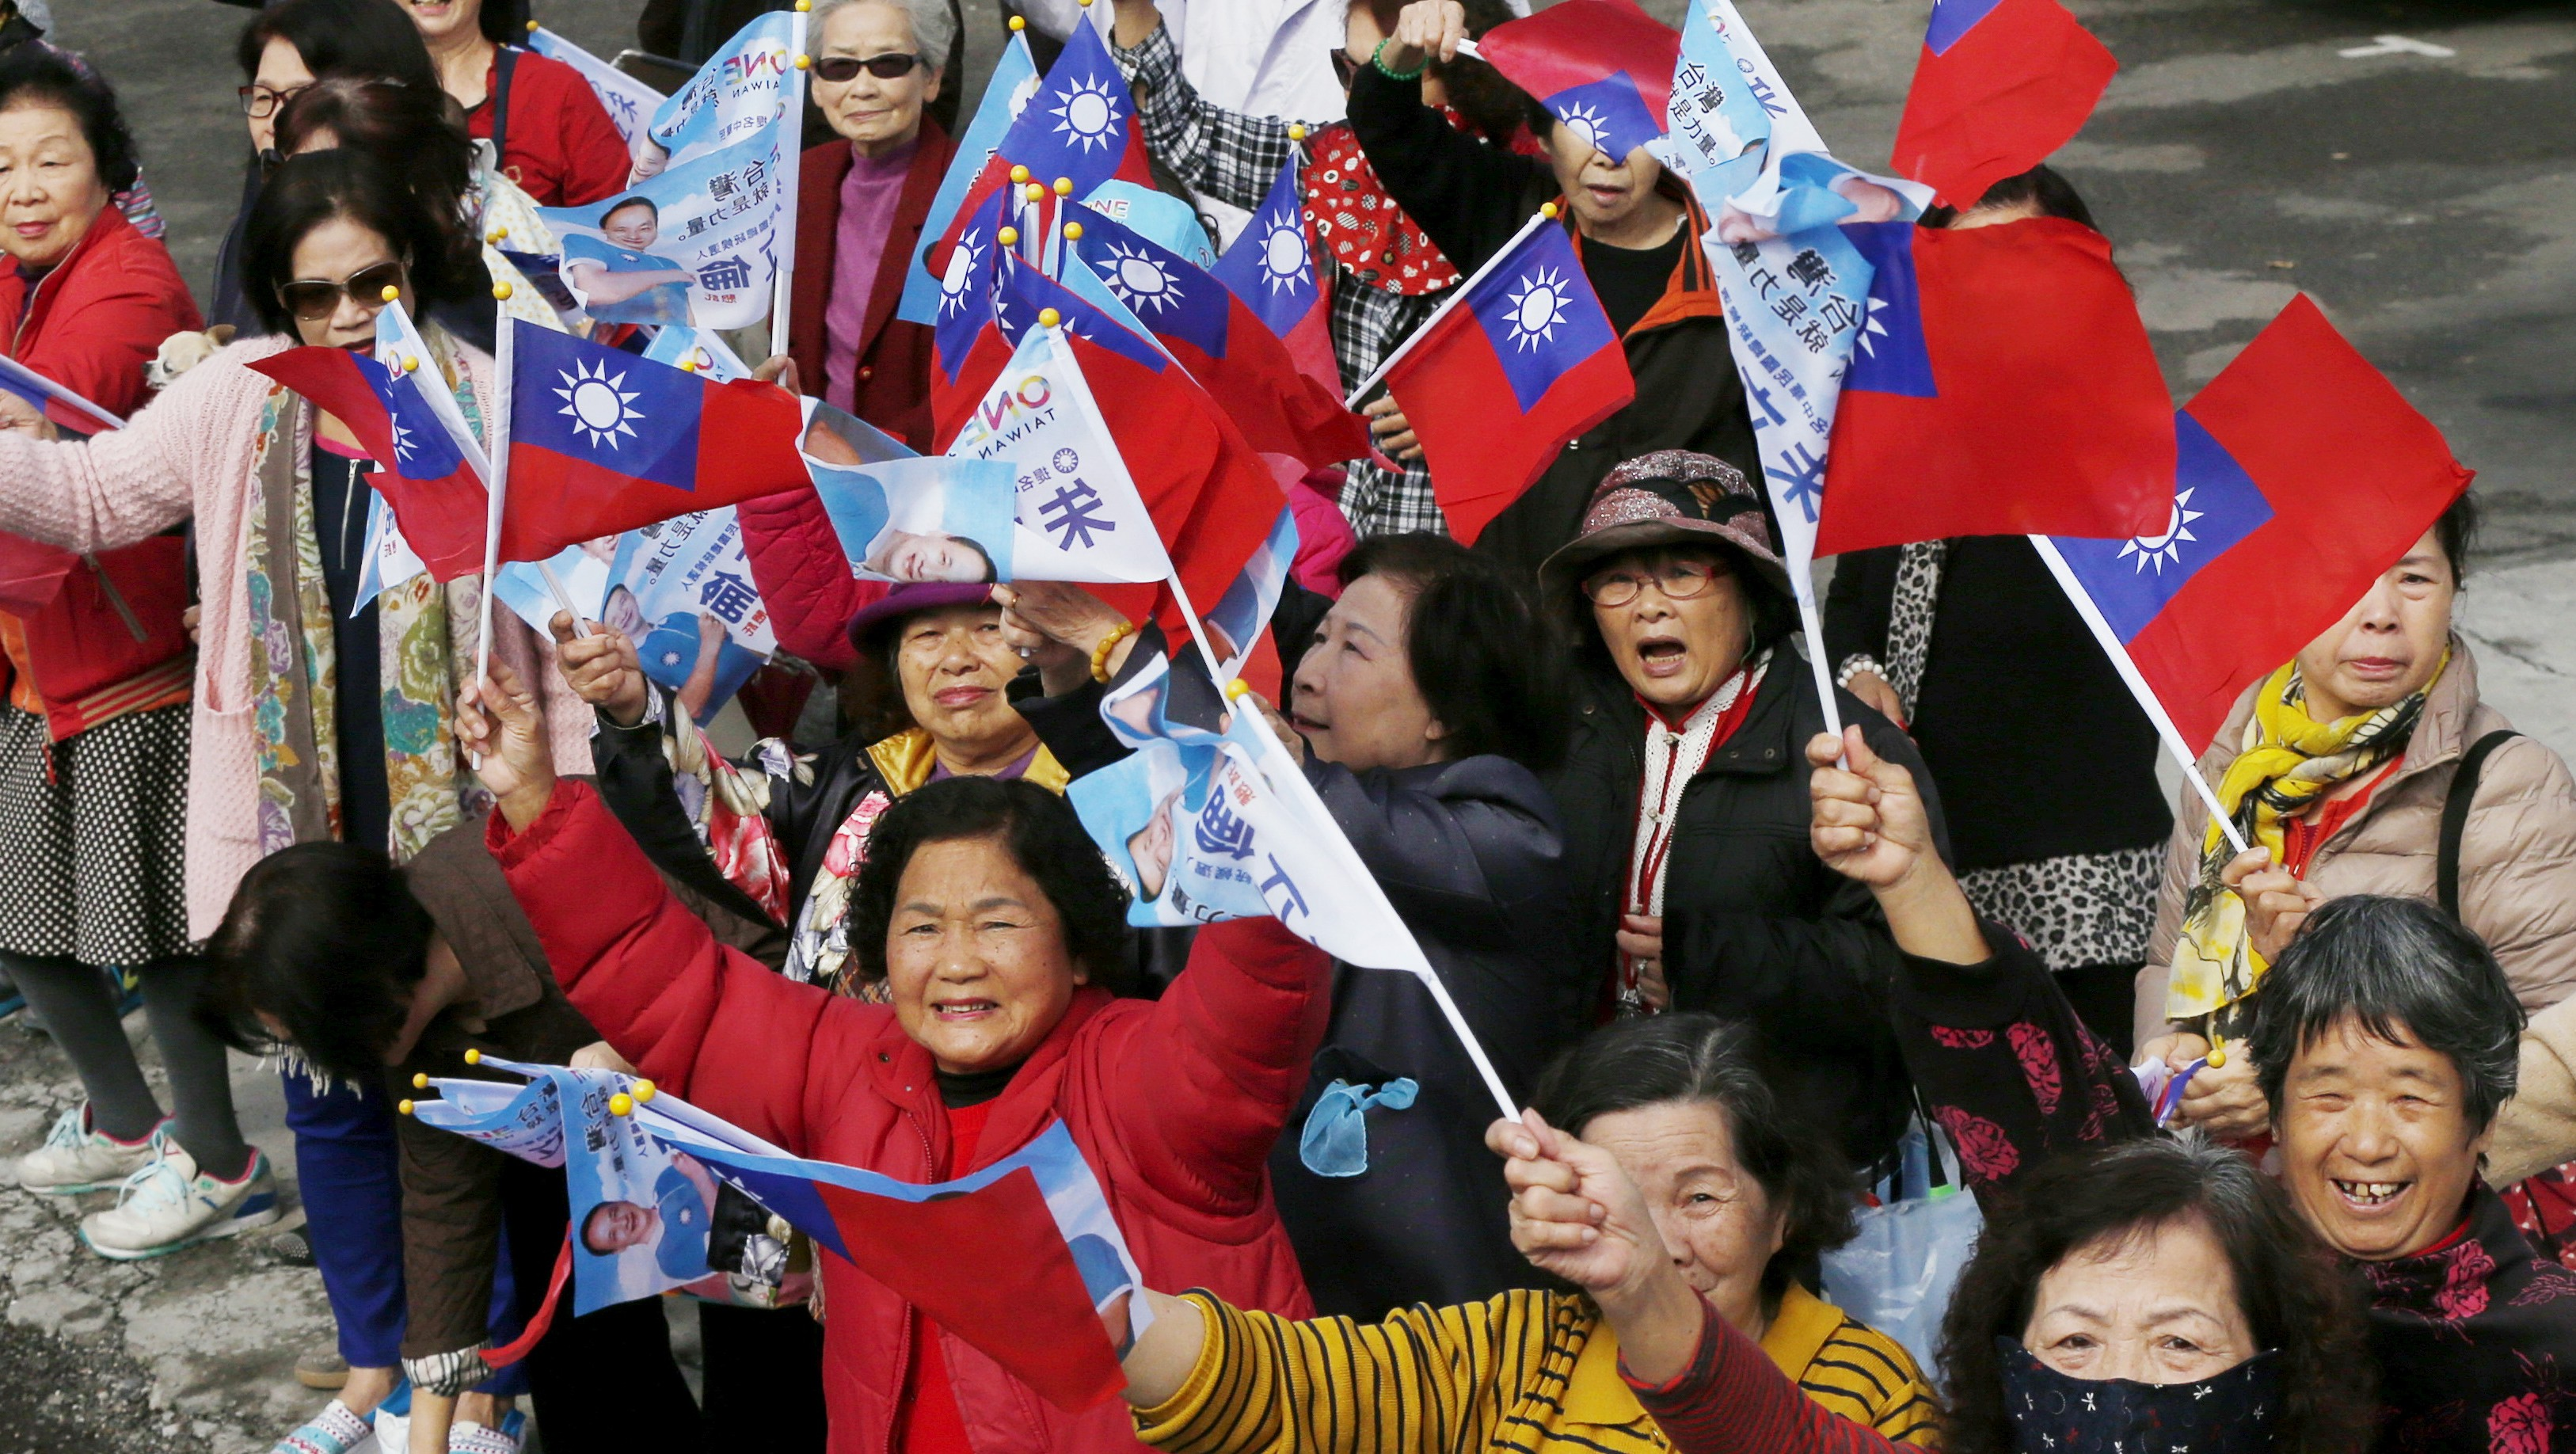 Supporters of Taiwan's ruling Nationalist Party, or Kuomintang (KMT), chairman and presidential candidate Eric Chu wave flags during a rally ahead of Taiwan's election on January 16, in Yuanlin City, Changhua County, January 12, 2016. REUTERS/Olivia Harris - RTX21YPB